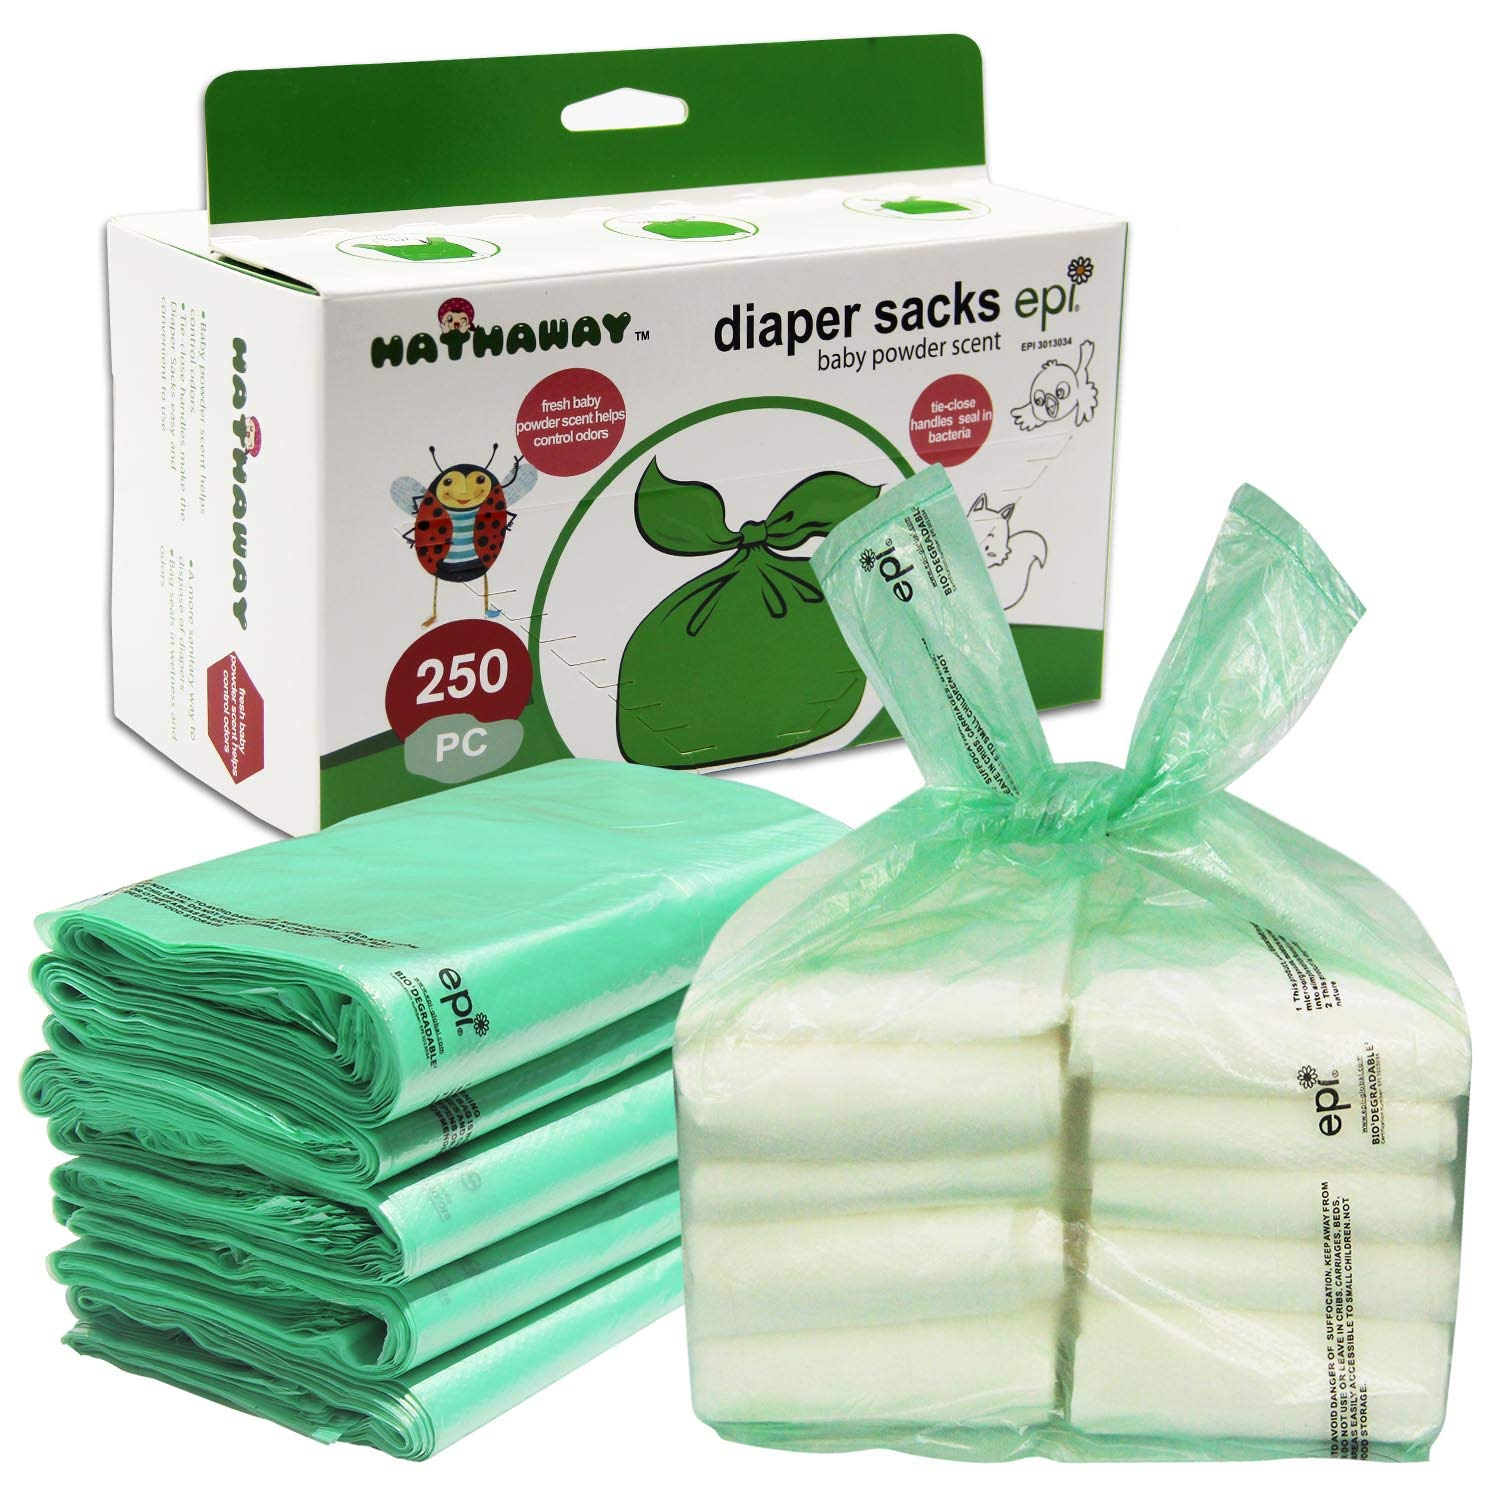 Baby Disposable Diaper Bags – 100% Biodegradable Diaper Sacks with Baby Powder Scent & Added Baking Soda to Absorb Odors - 250 Count (Green) HATHAWAY